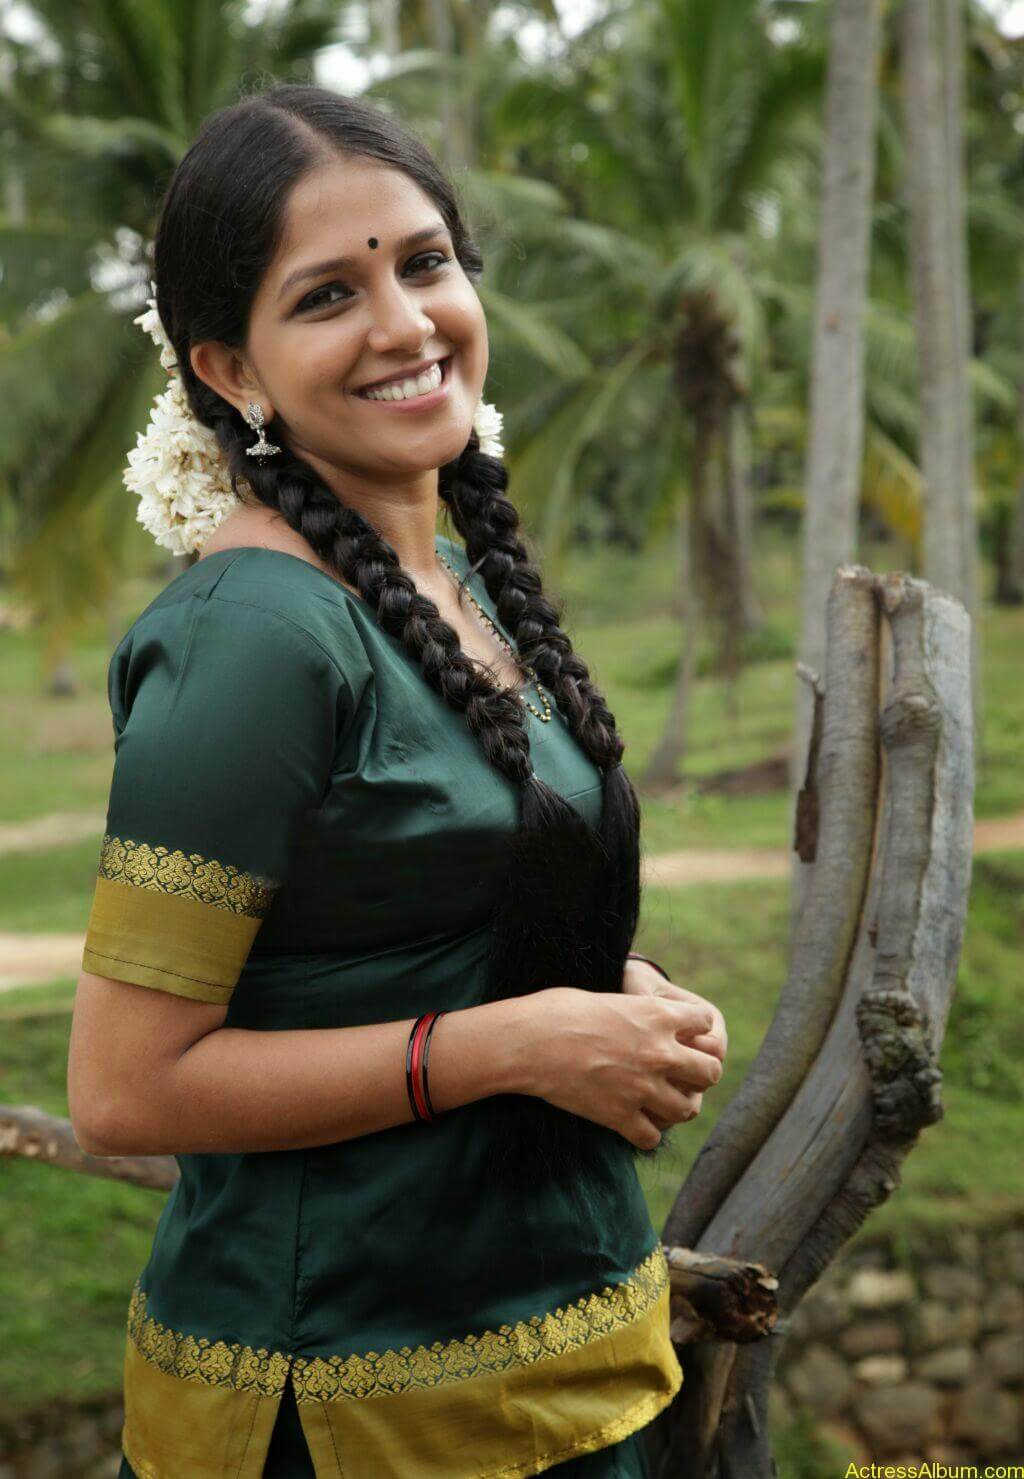 Aparna-Nair-Hot-in-Pattu-Pavada-and-Blouse-4